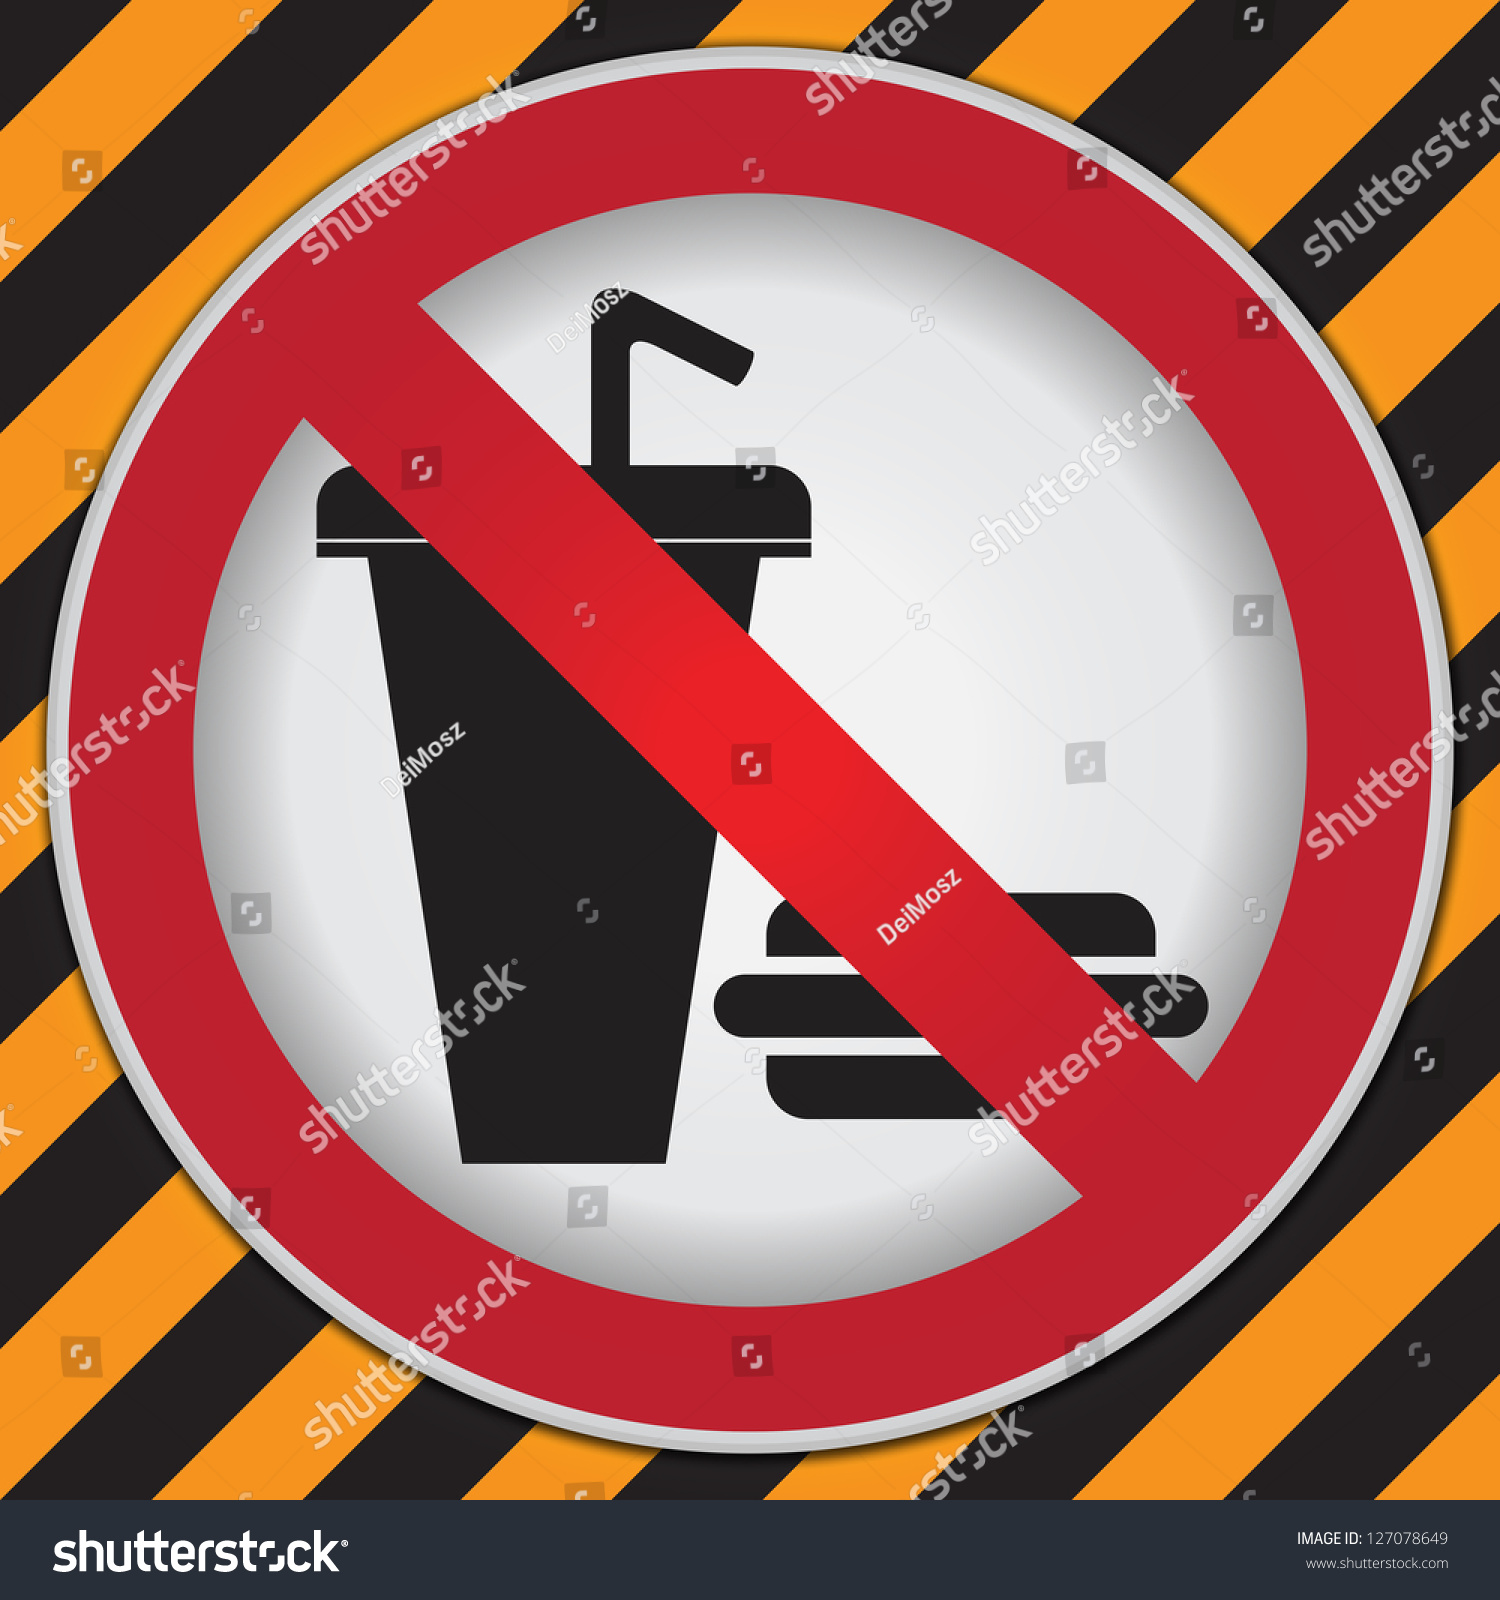 Что такое eating prohibitted 6 фотография